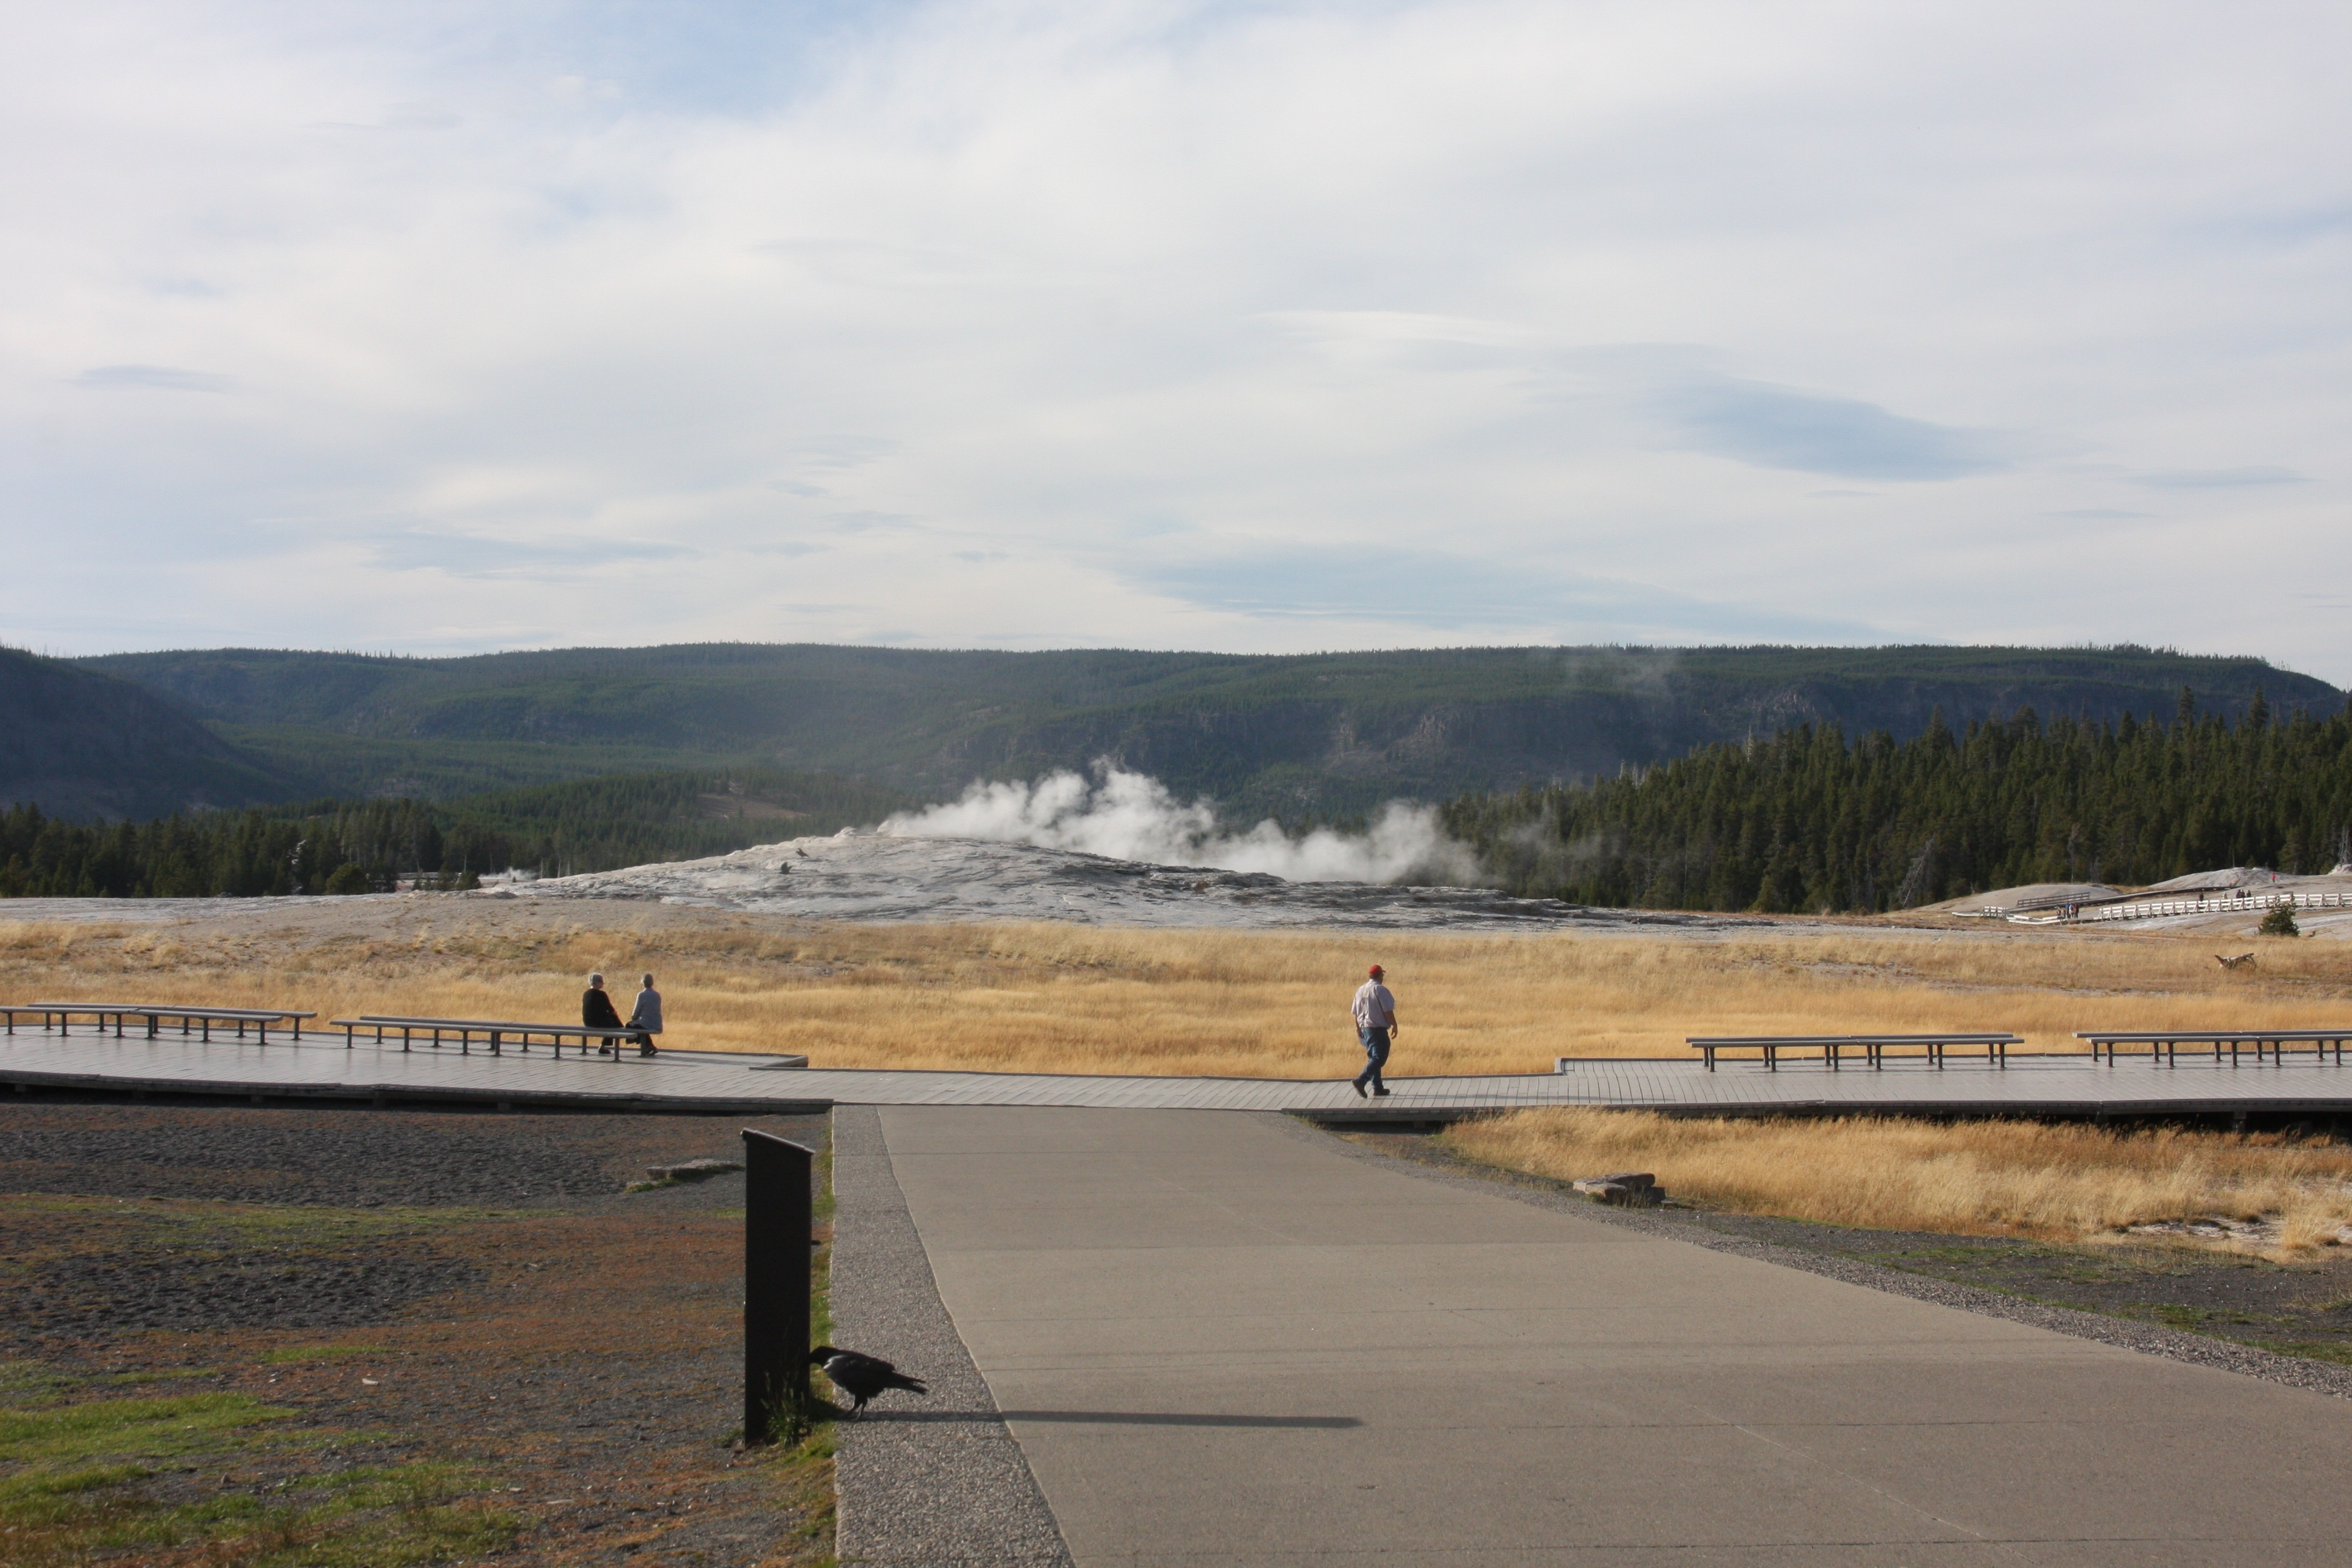 Free download high resolution image - free image free photo free stock image public domain picture -Beautiful geyser in yellowstone national park